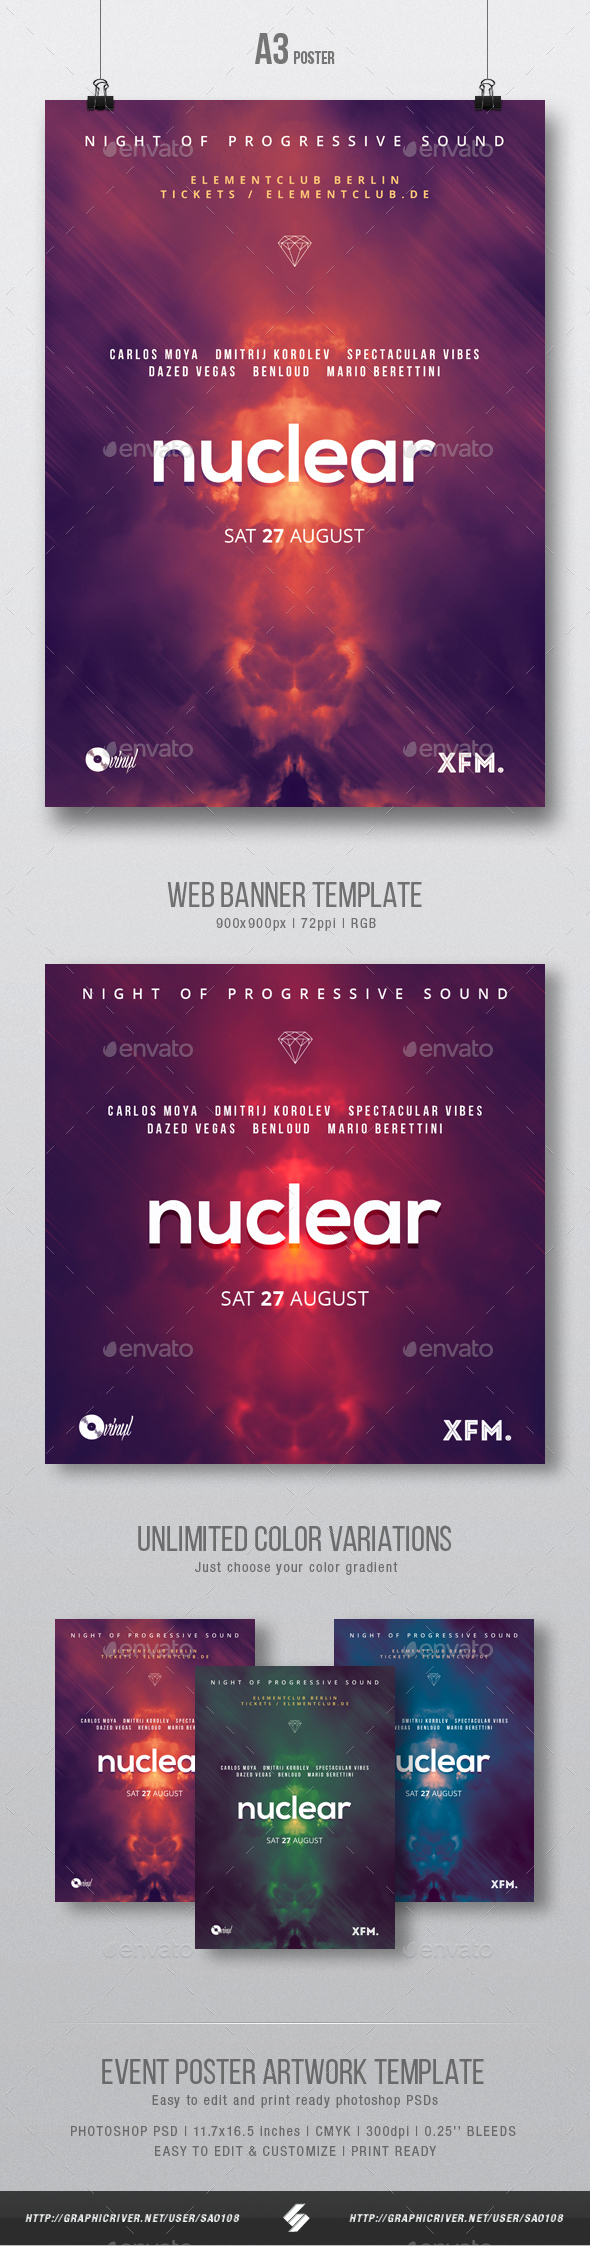 Nuclear - Minimal Party Flyer / Poster Template A3 - Clubs & Parties Events